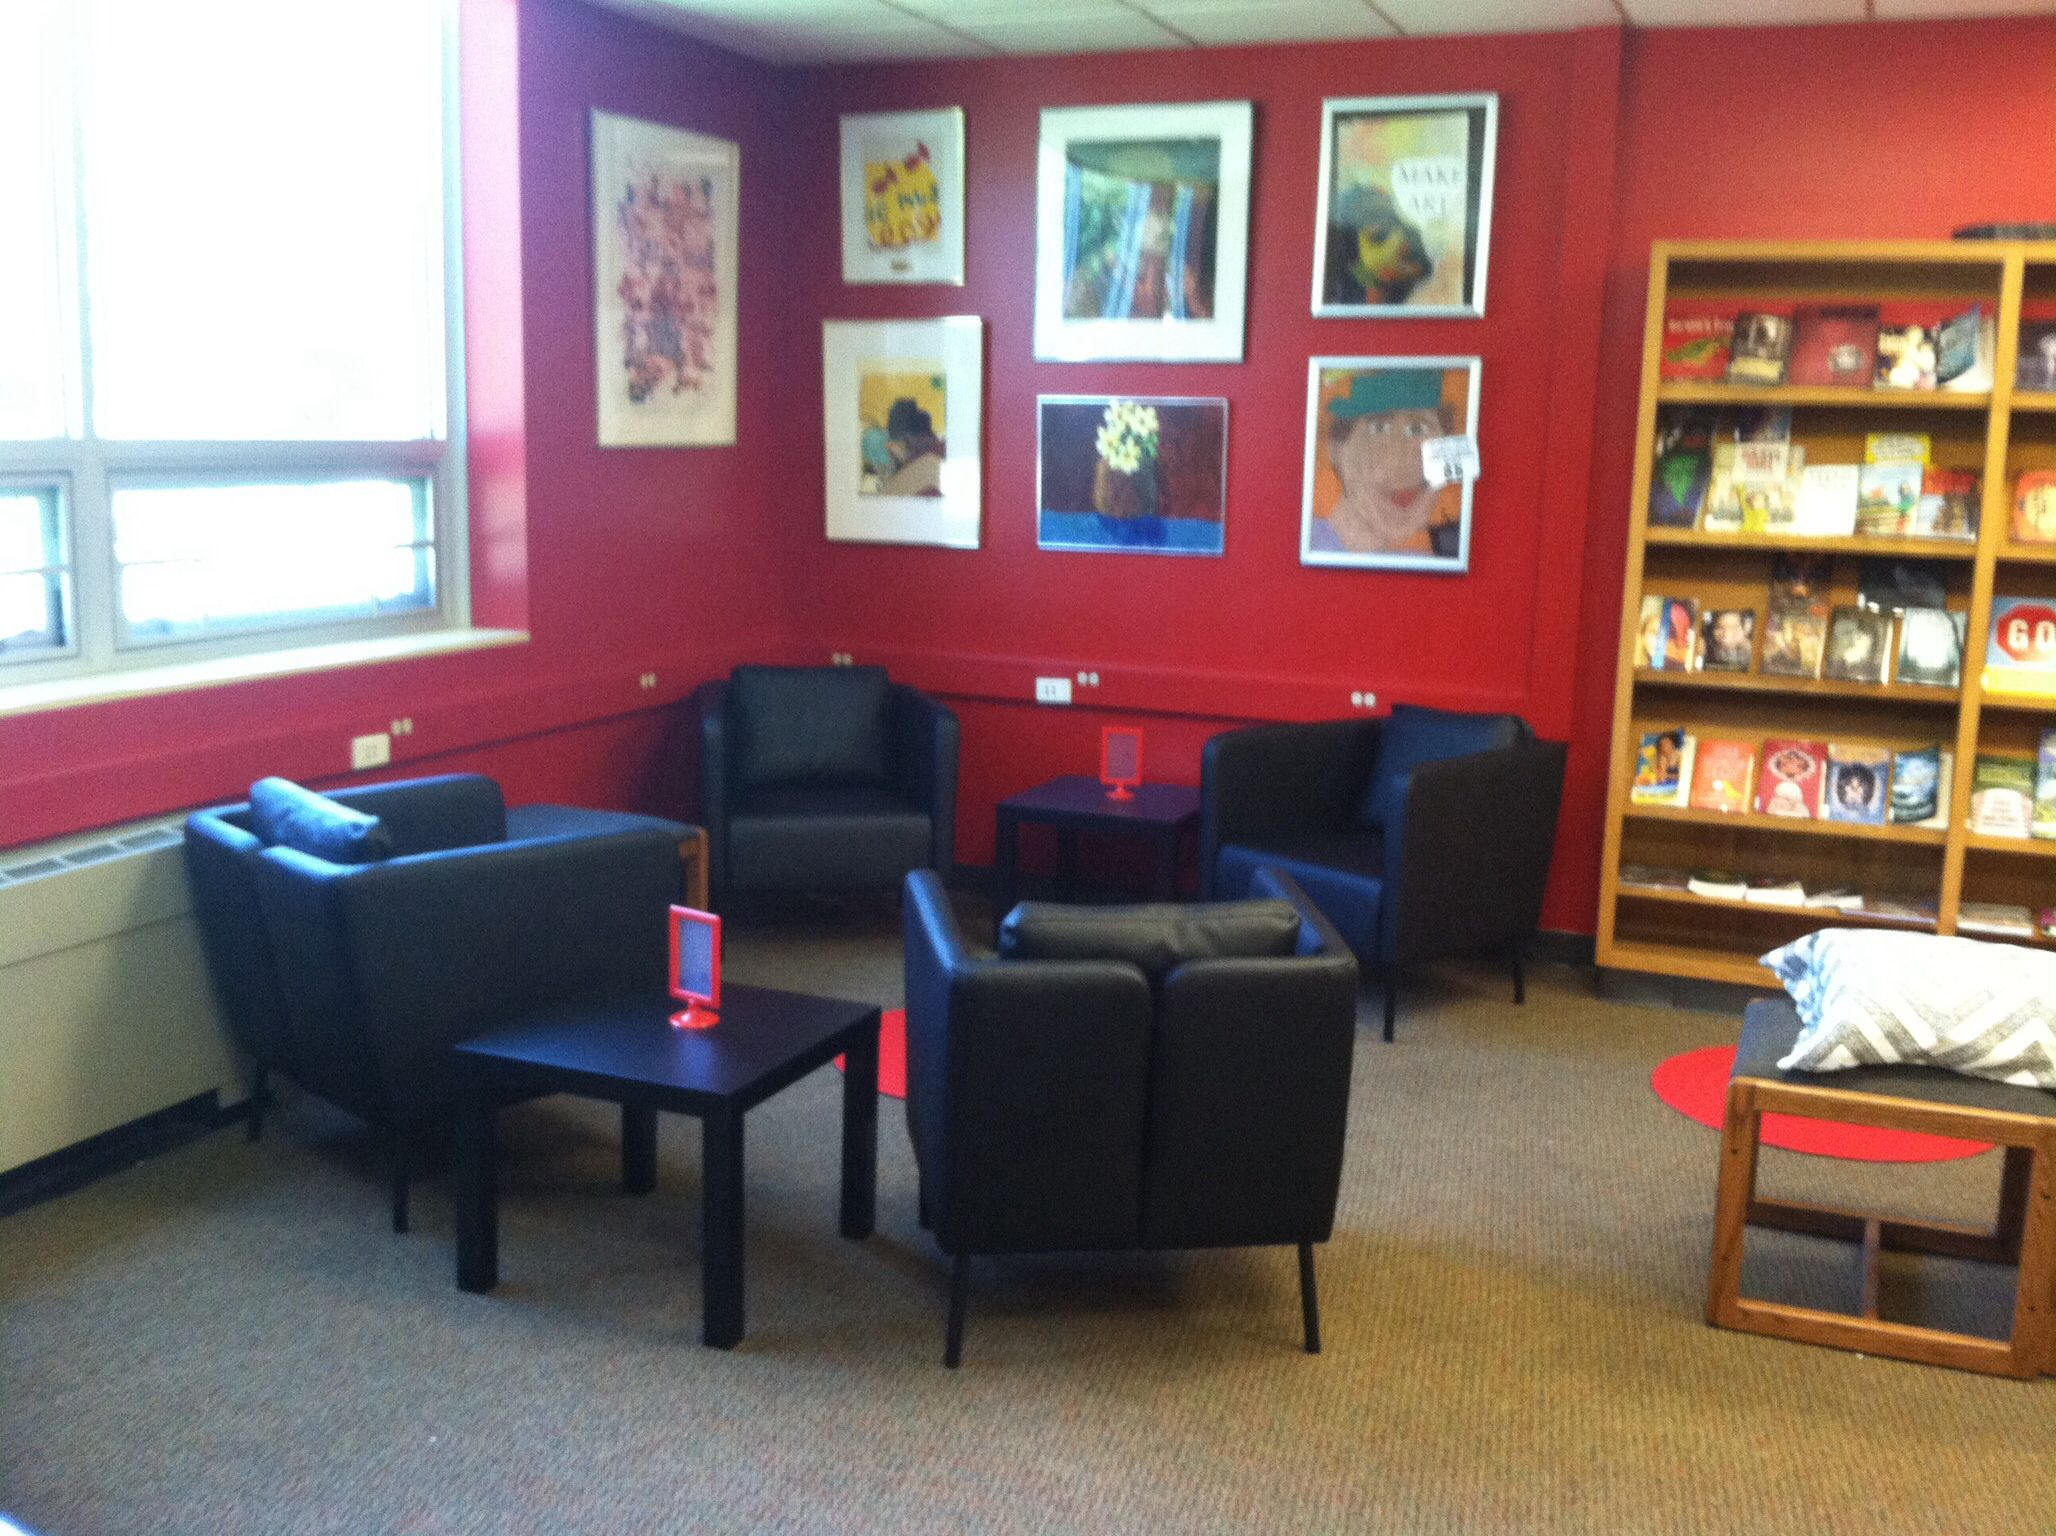 Superieur Ikea Furniture In The Reading Corner At South East Junior High Library,  Iowa City.